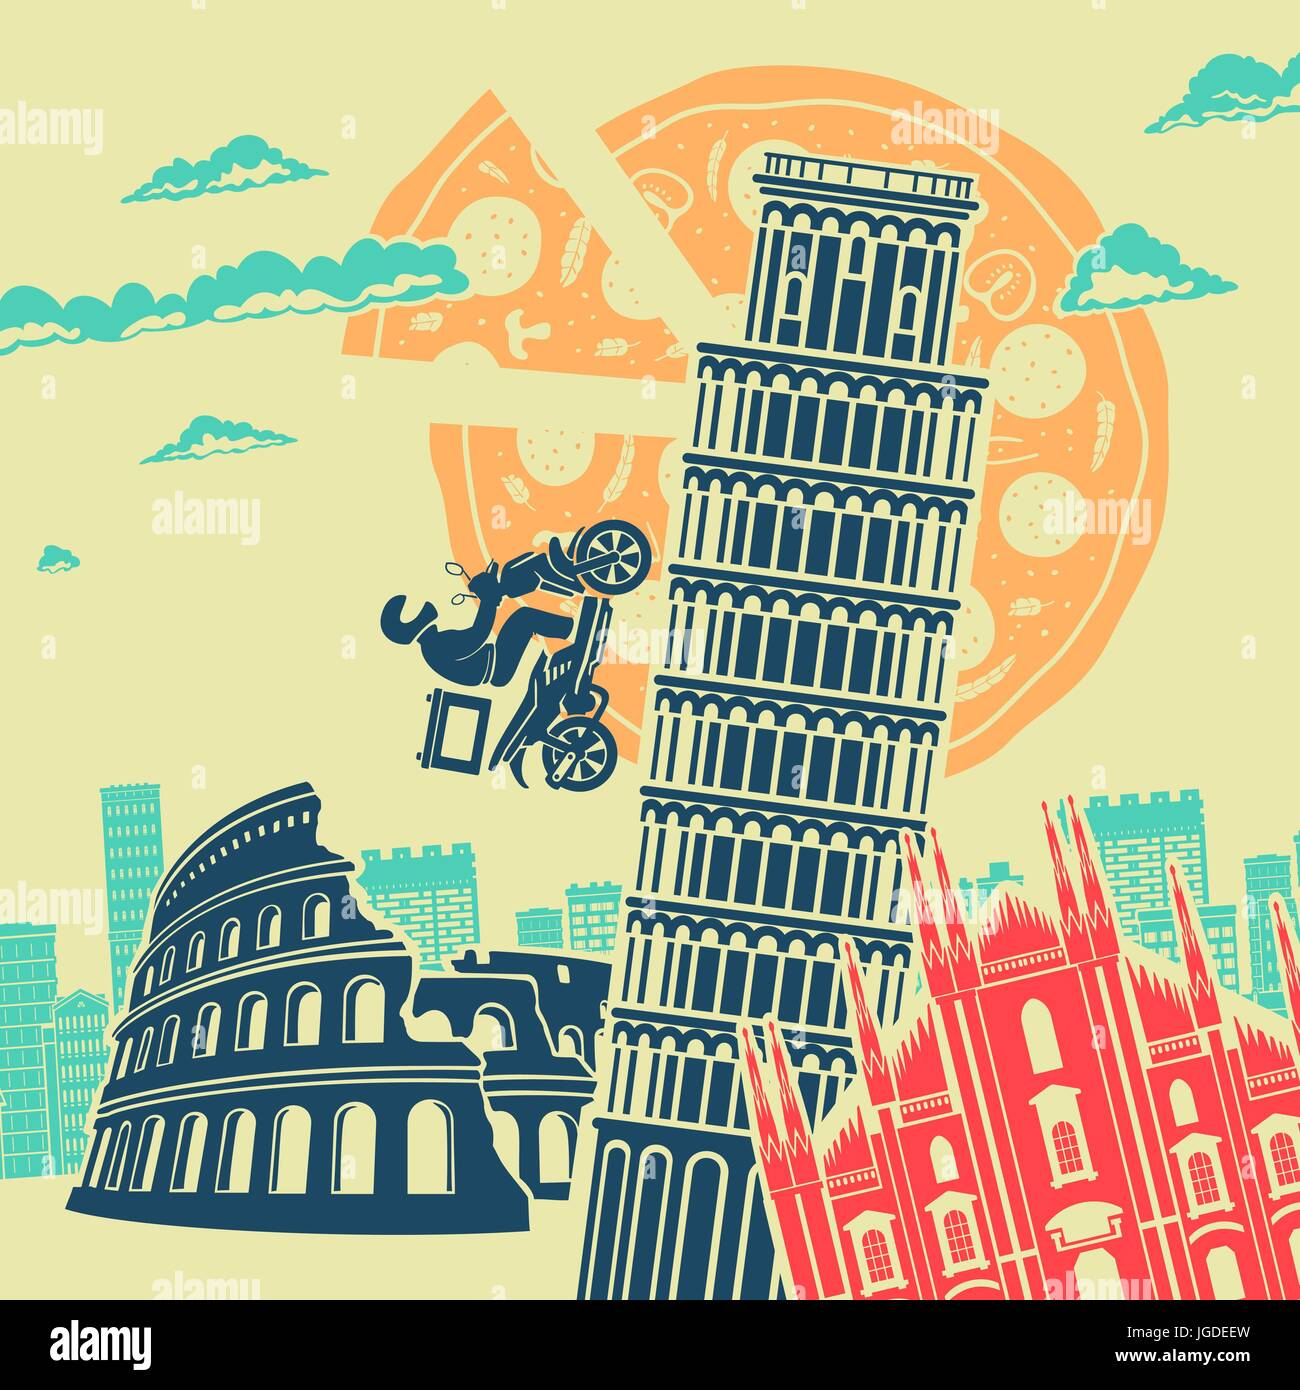 Italy Attractions Vector Background - Stock Vector